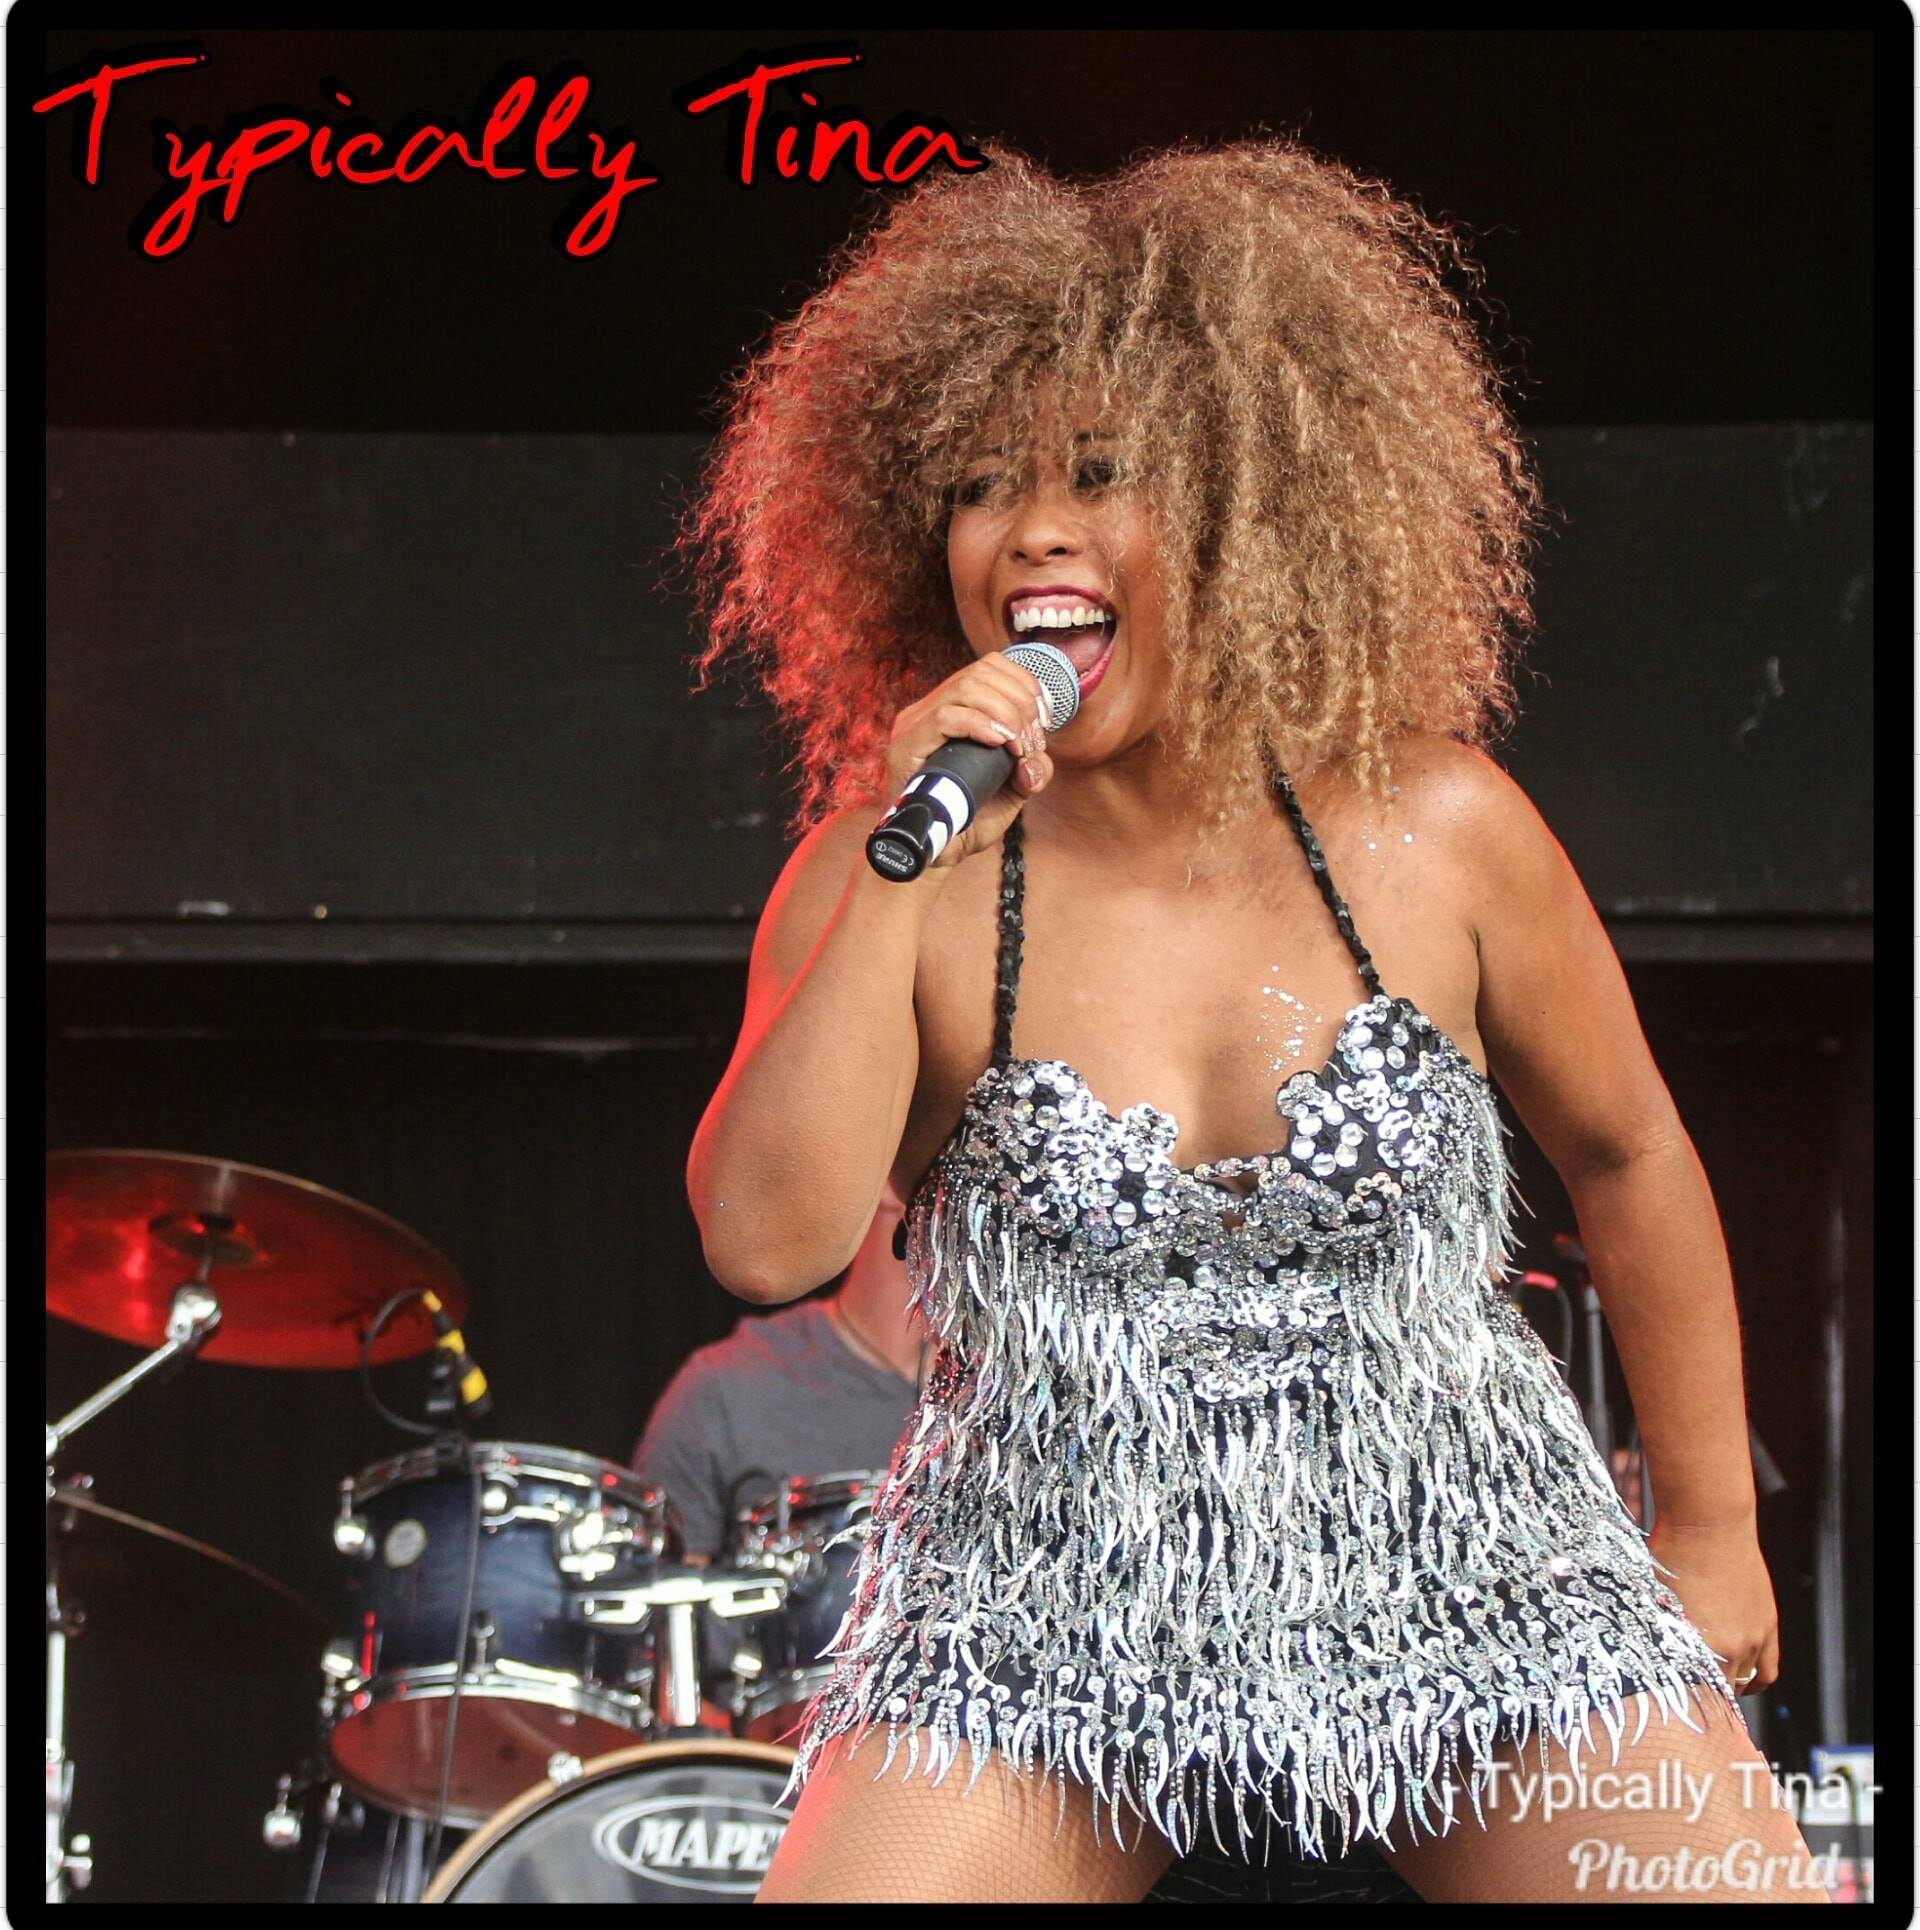 Typically Tina - Tina Tuner Tribute Sat 29th February